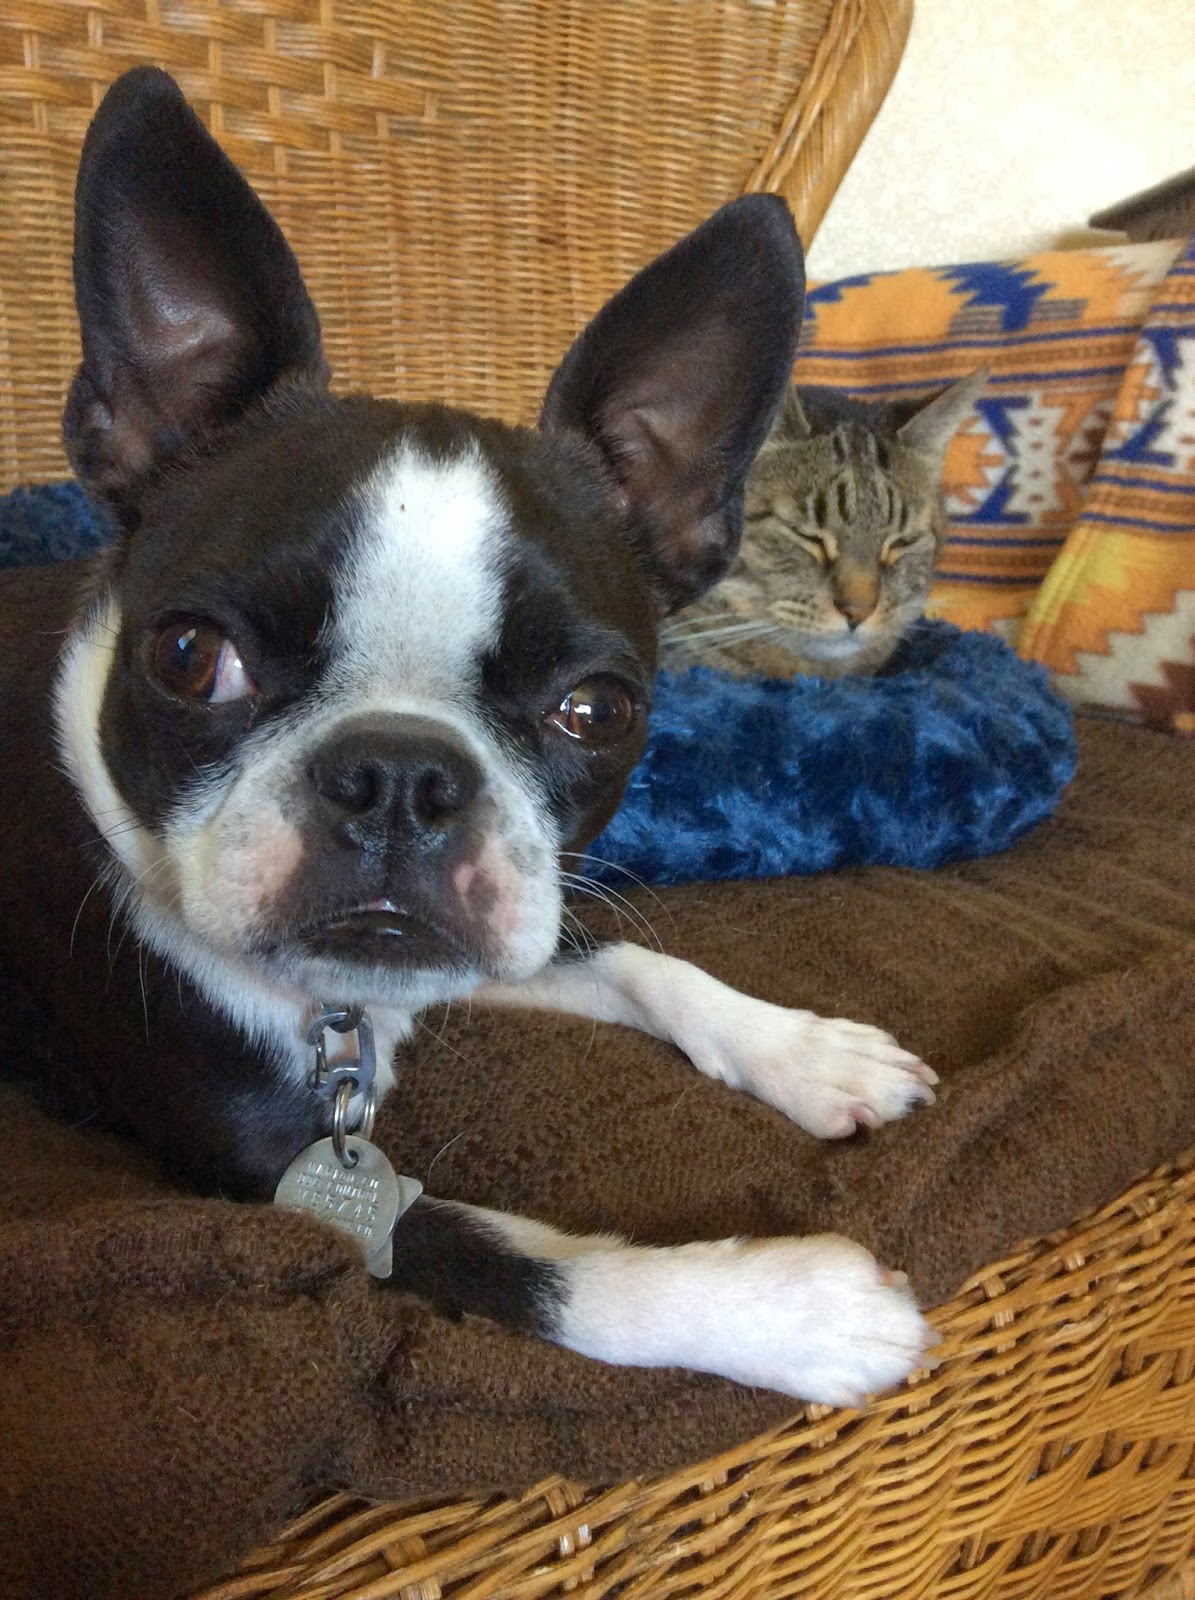 Sinead the Boston terrier and Eamon the cat